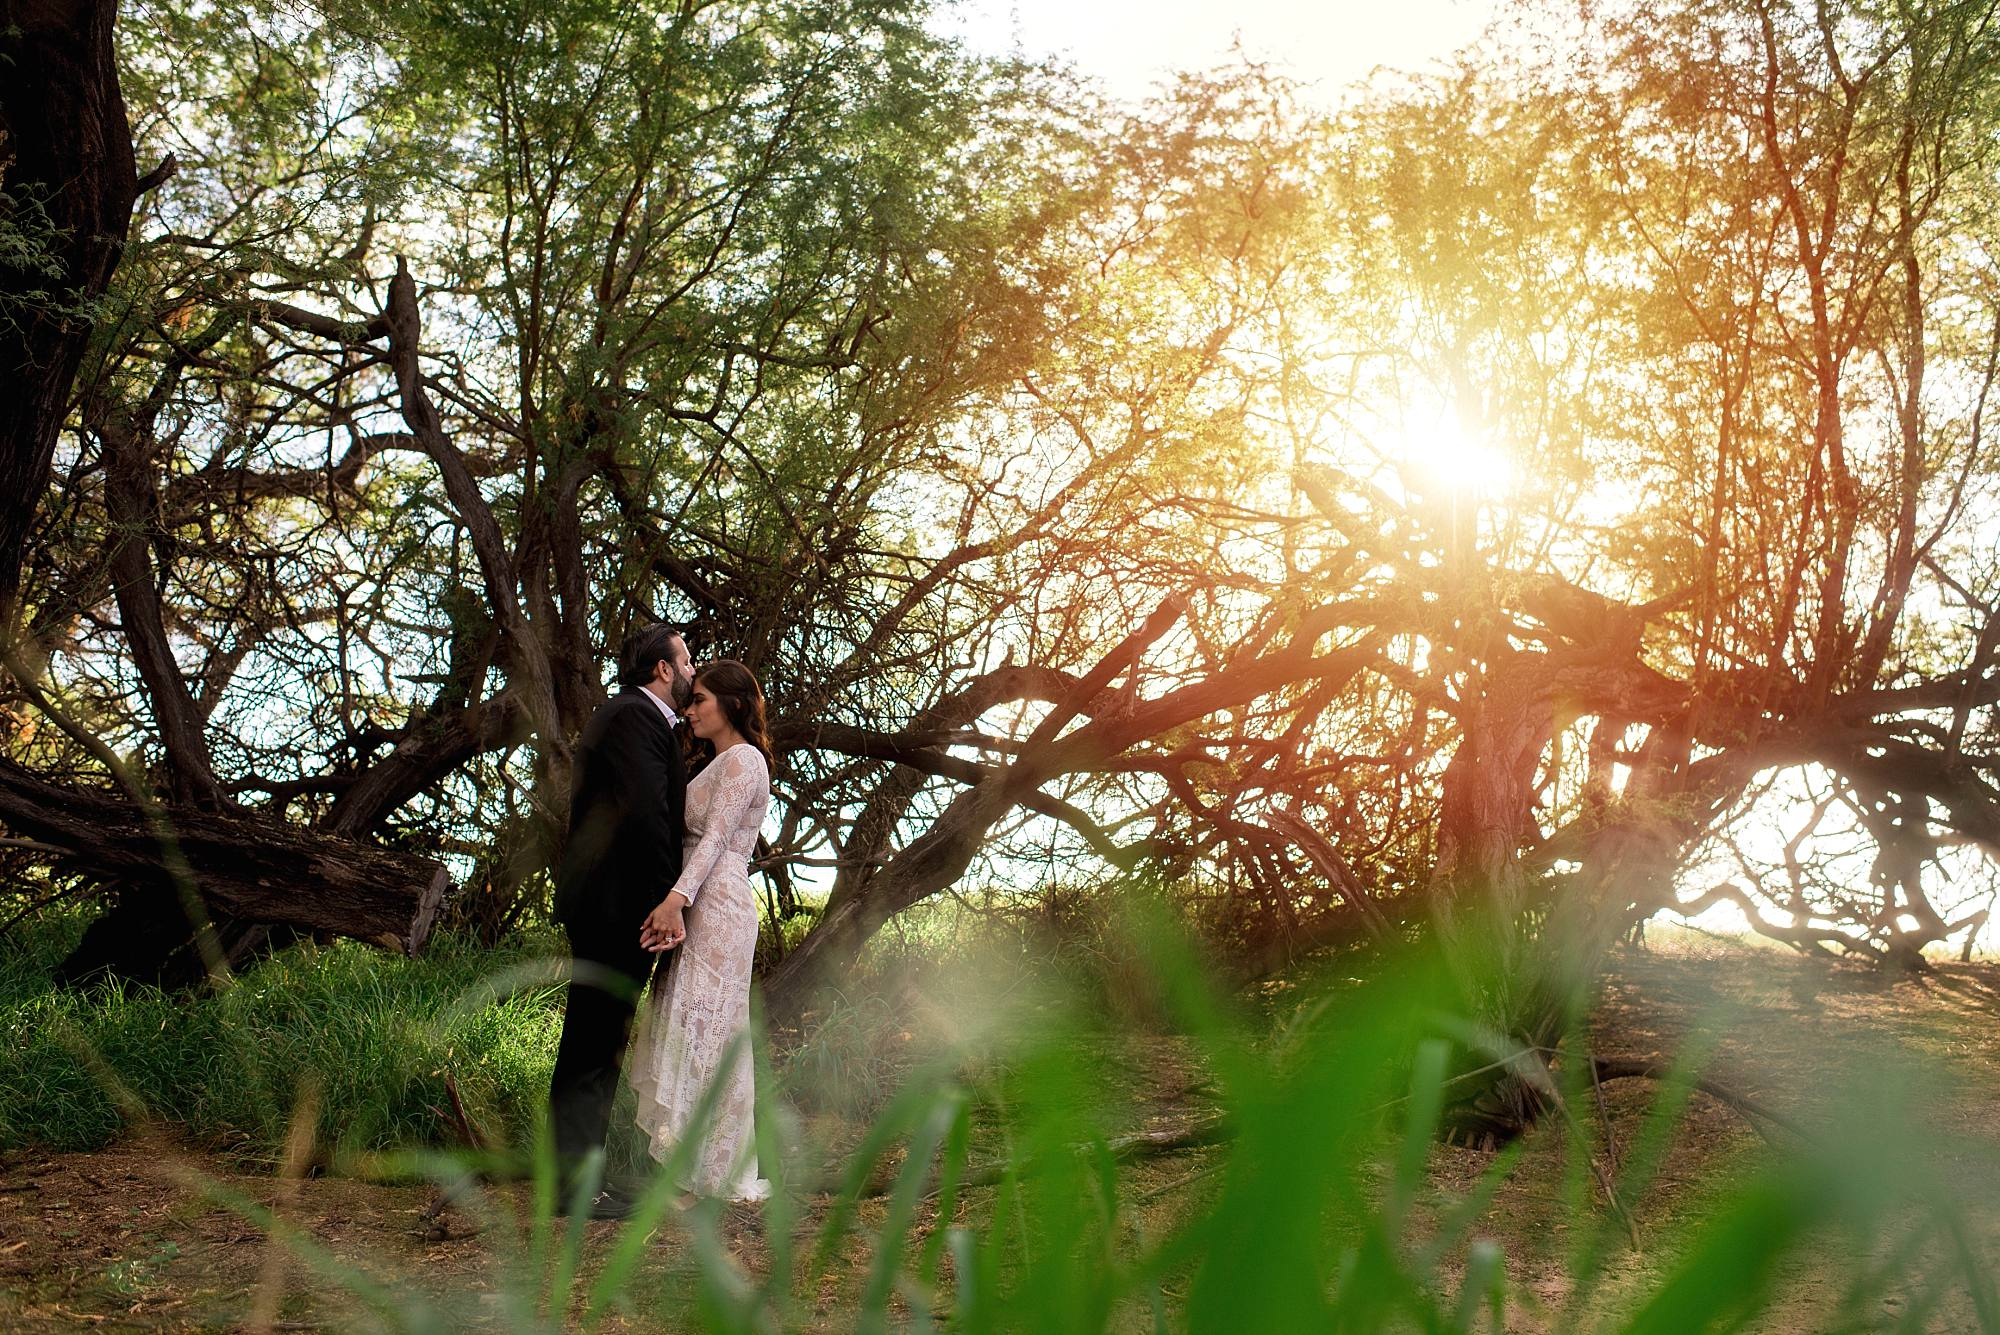 husband kissing wife's head under the golden sun and canopy of treey